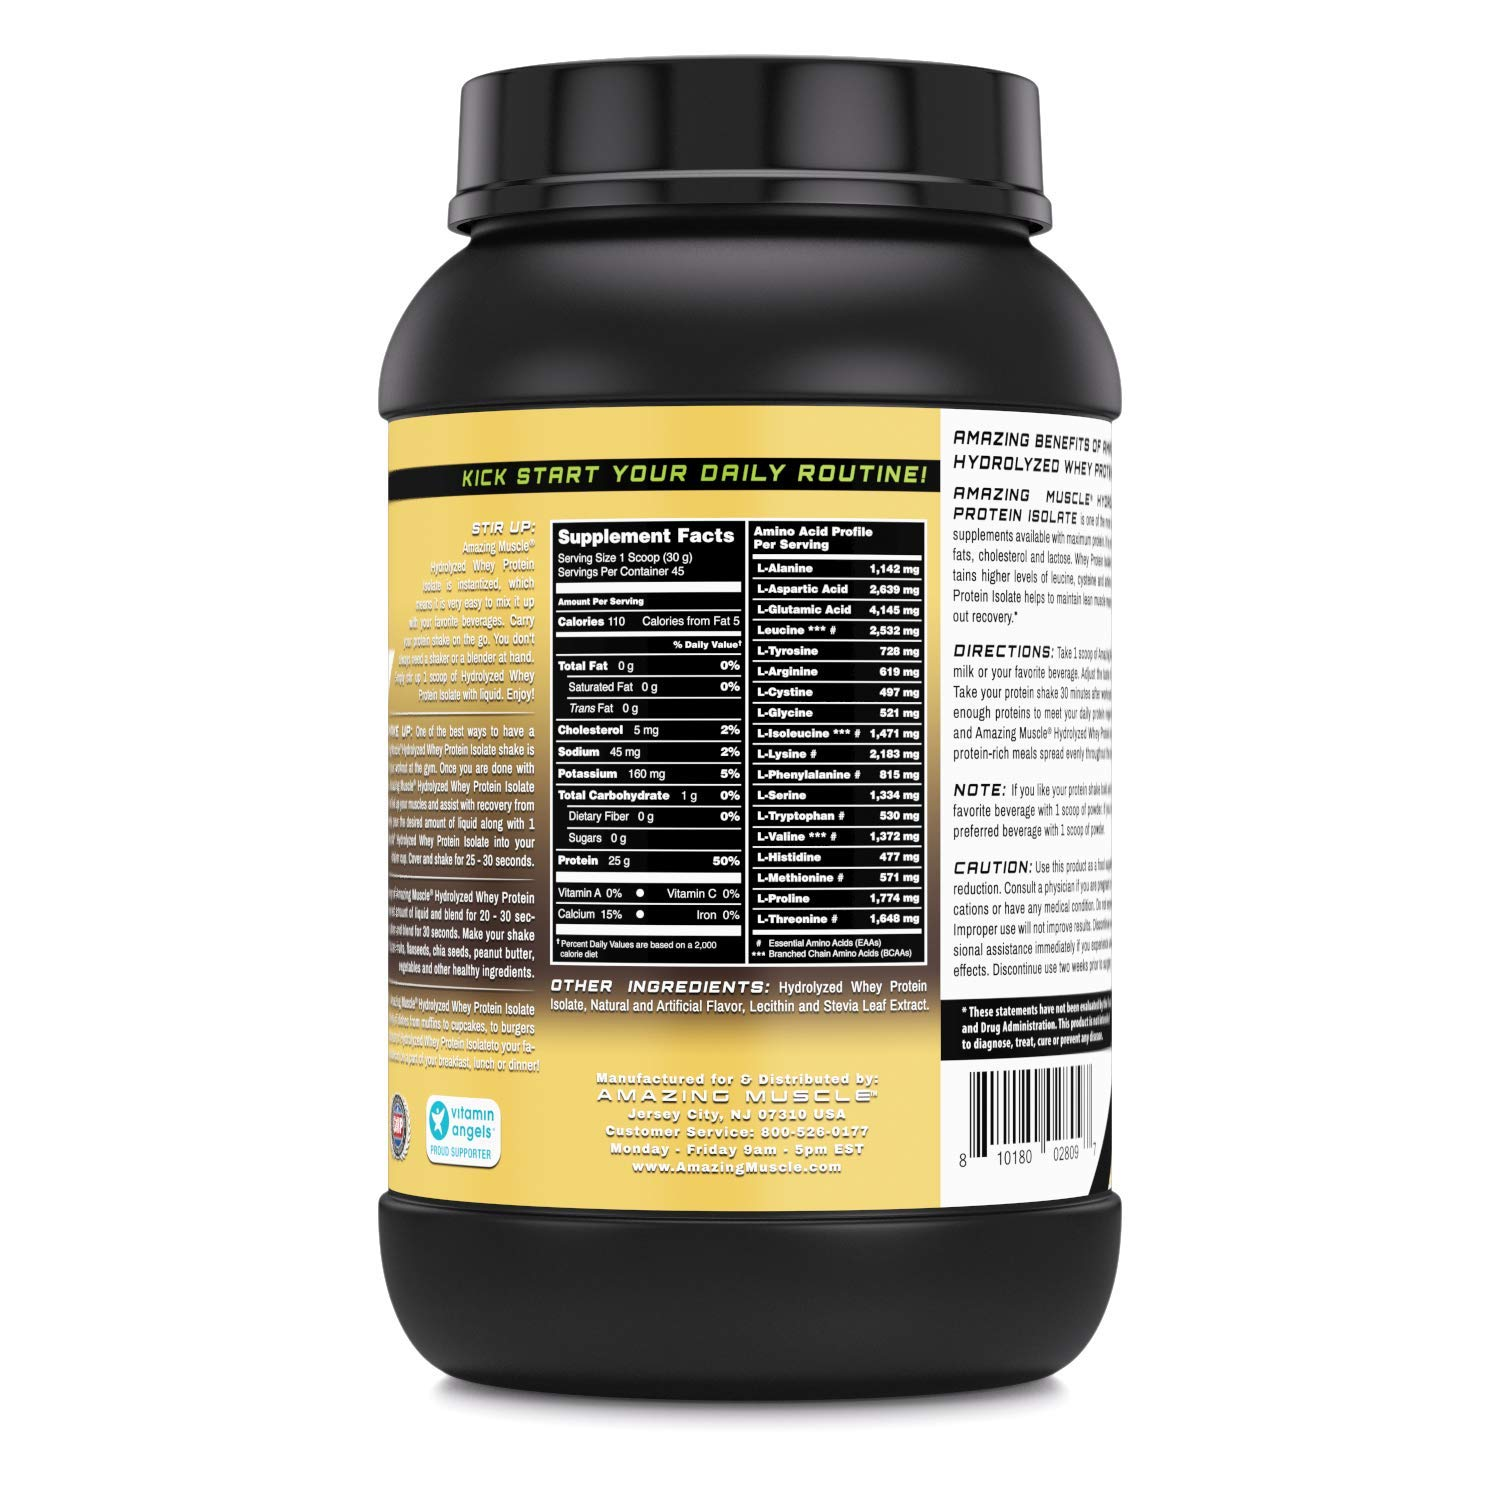 Amazon.com: Amazing Muscle Ultra Pure Hydrolyzed Whey Protein Isolate * Supports Lean Muscle Growth & Rapid Recovery (Strawberry): Health & Personal Care